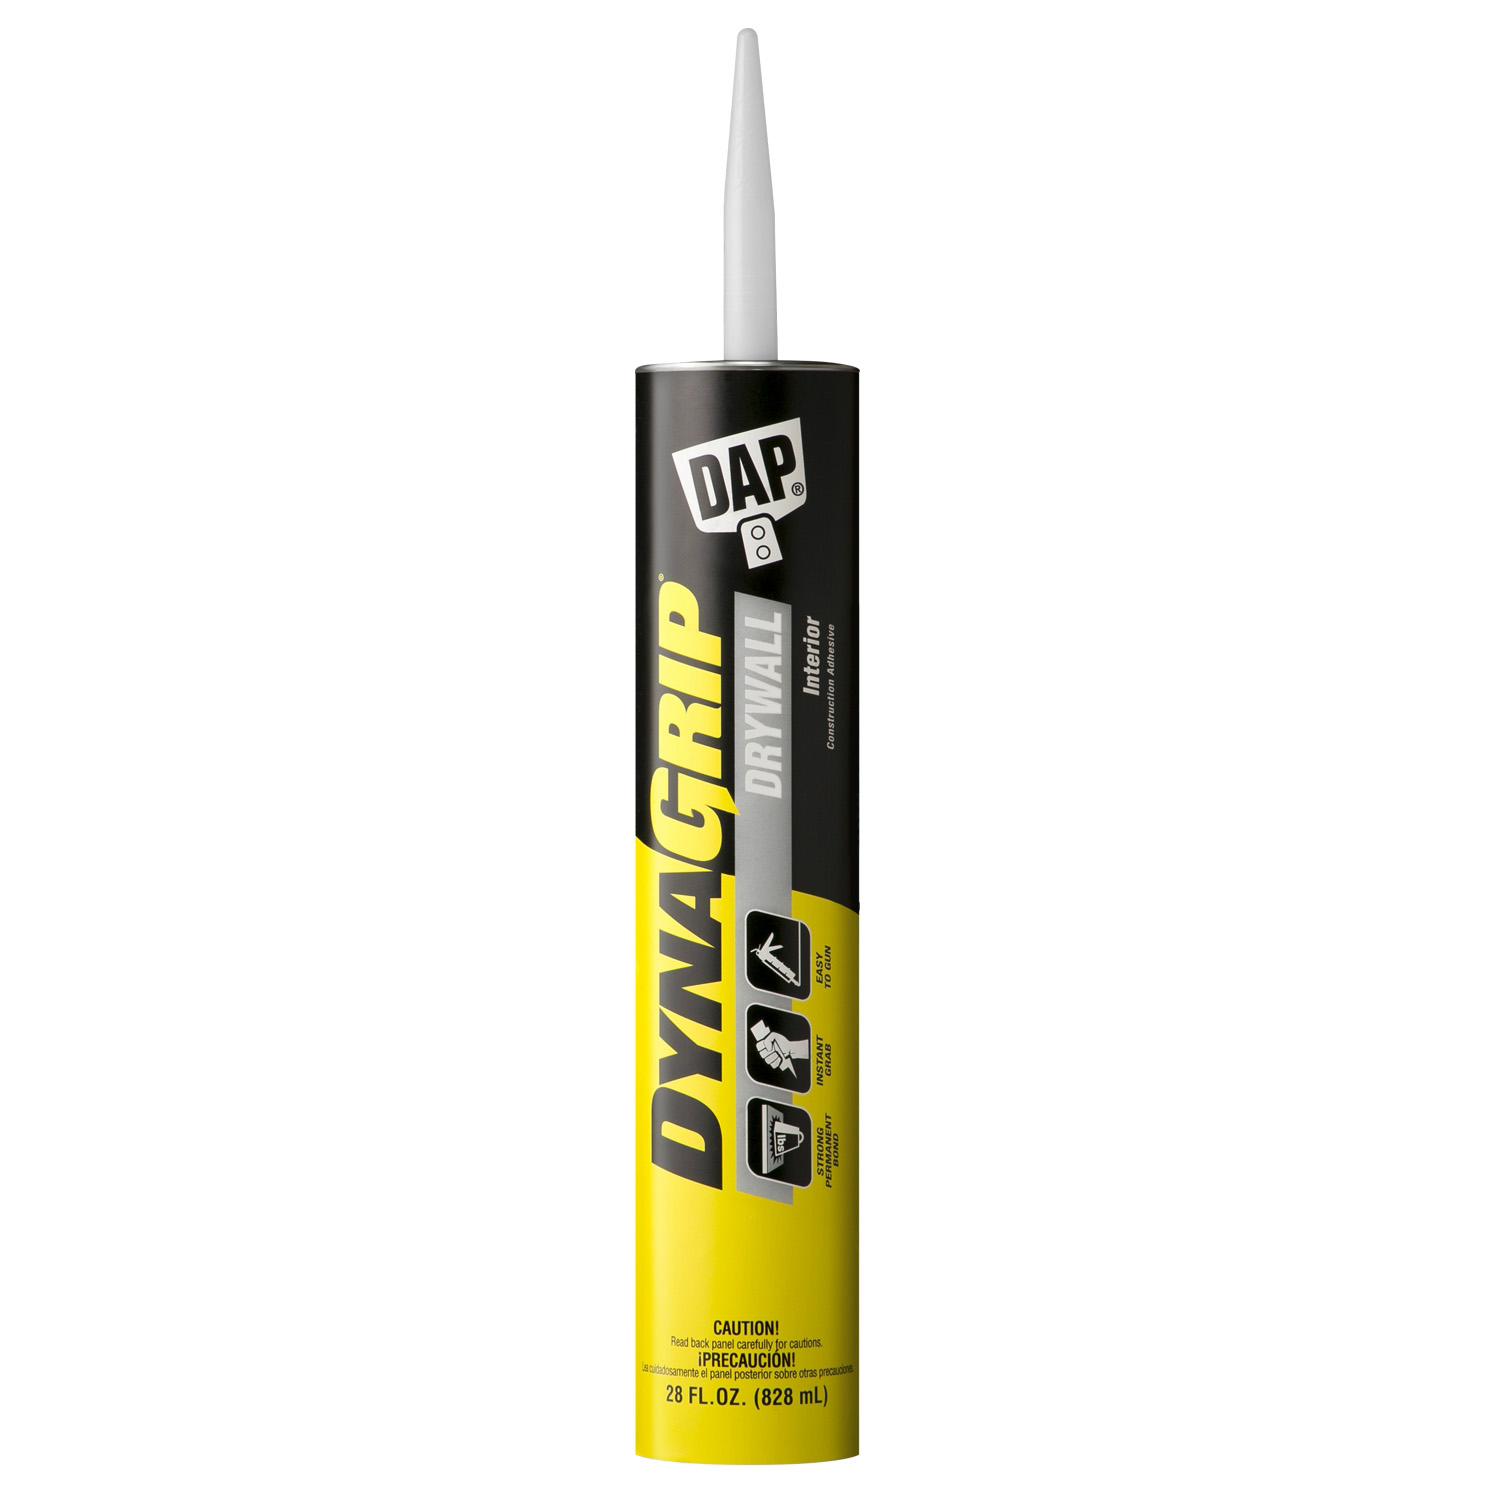 Picture of DAP DYNAGRIP 27518 Drywall Construction Adhesive, Off-White, 28 oz Package, Cartridge